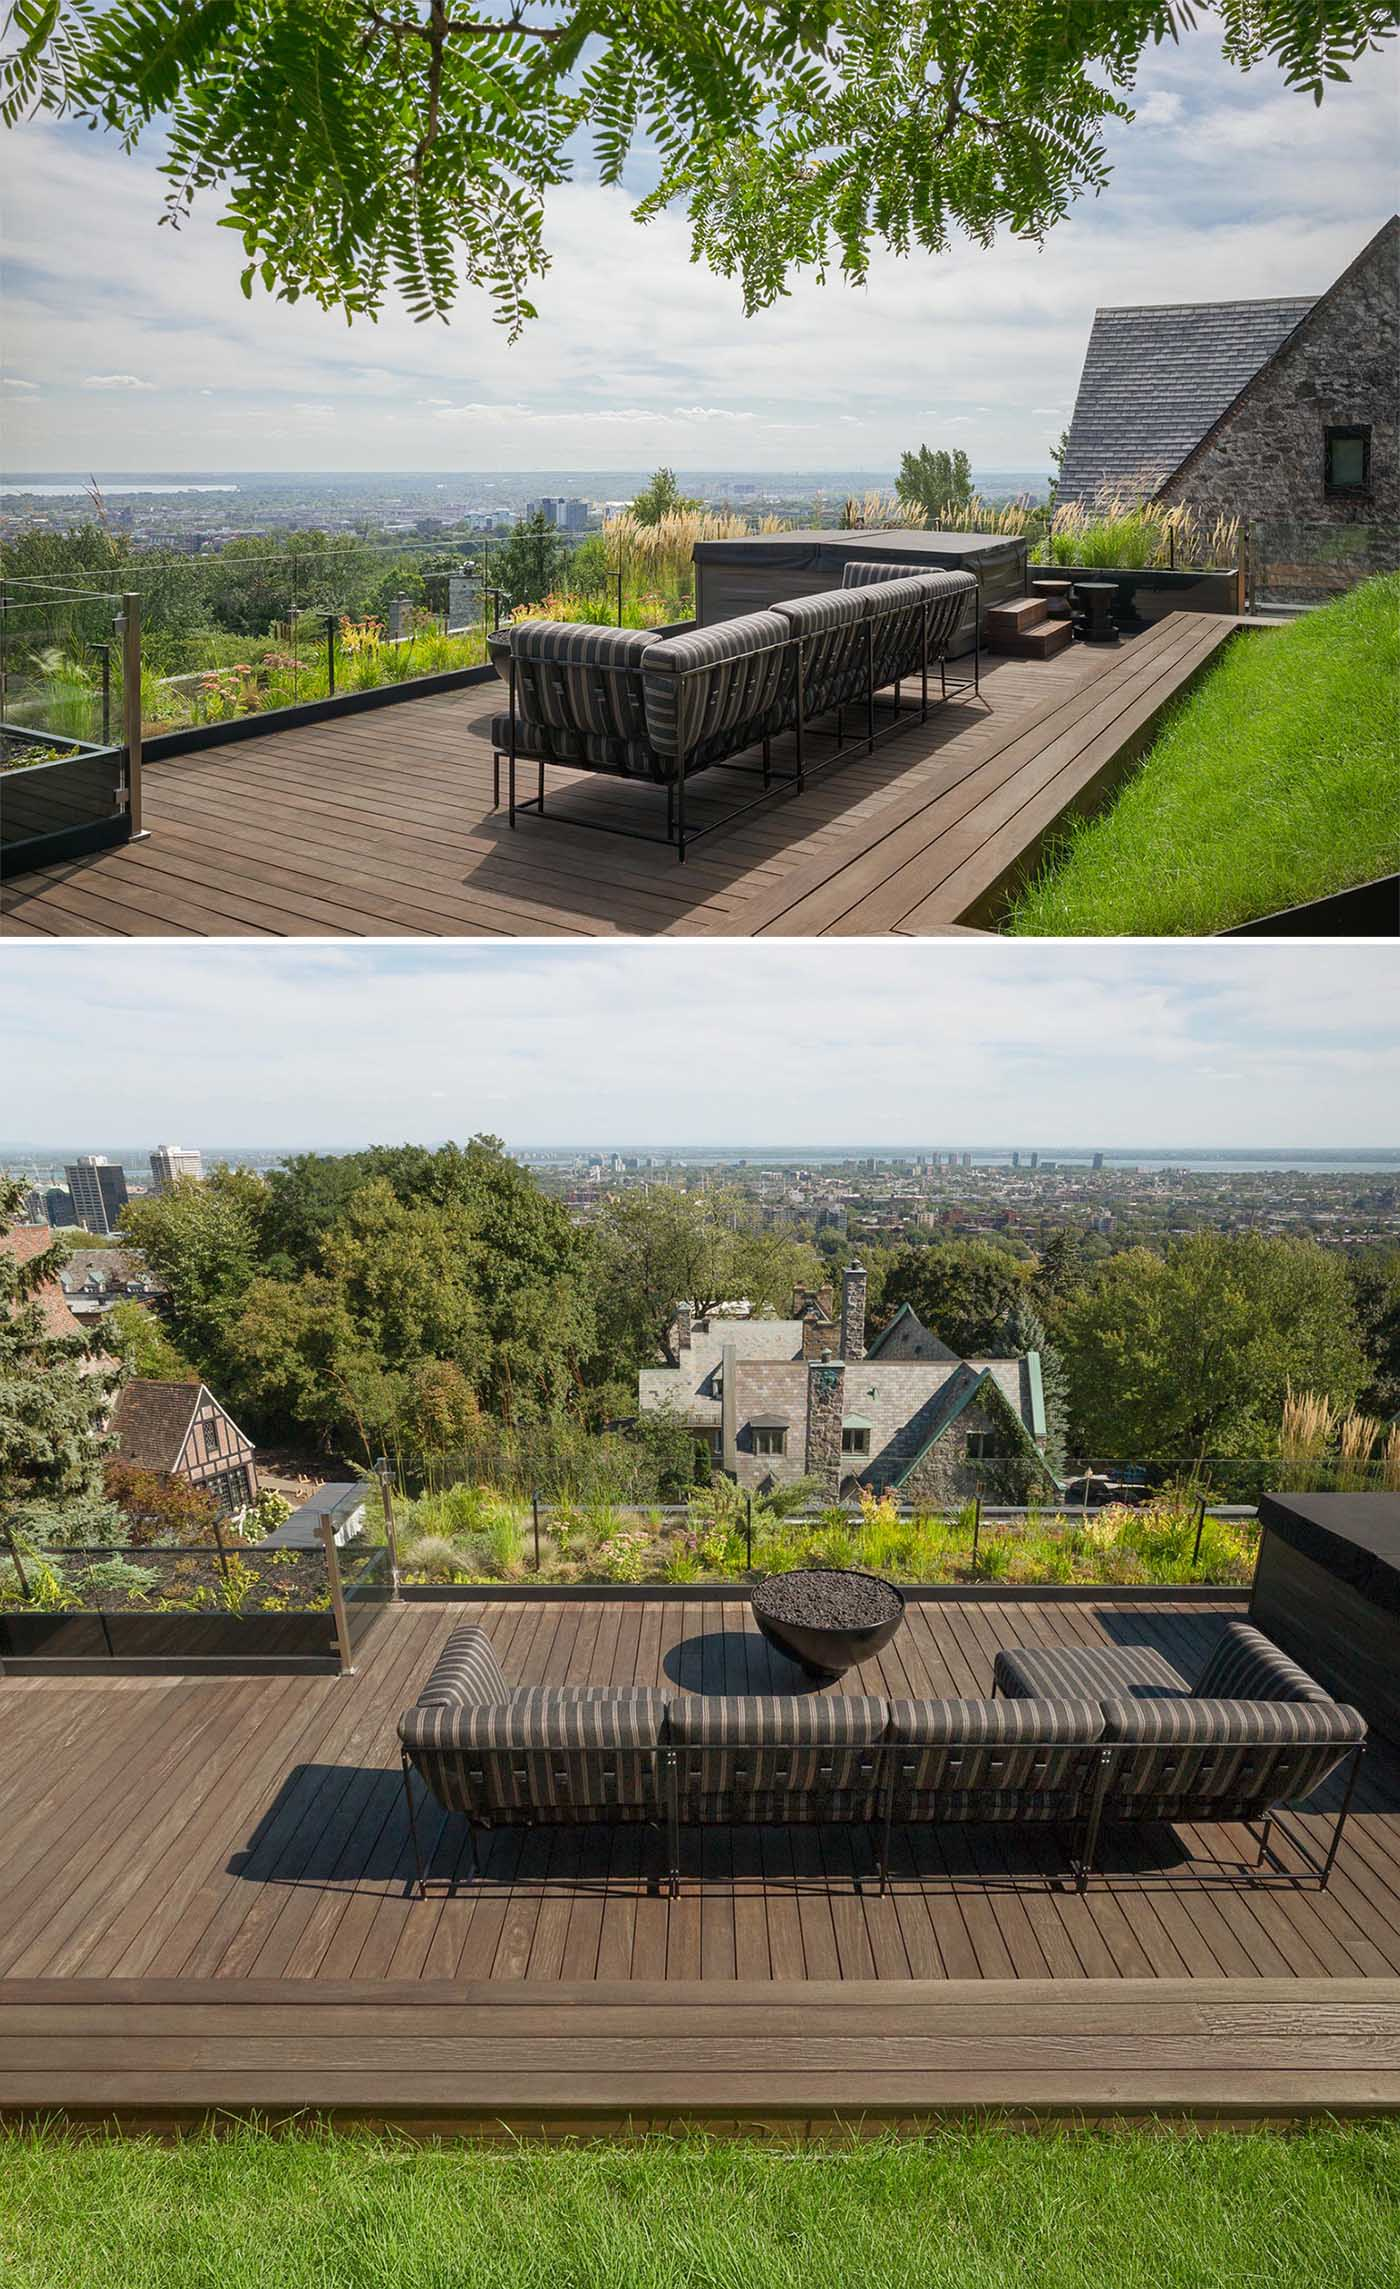 A modern rooftop terrace with an Ipe wood deck, exterior lighting, a sofa, and wildflowers.